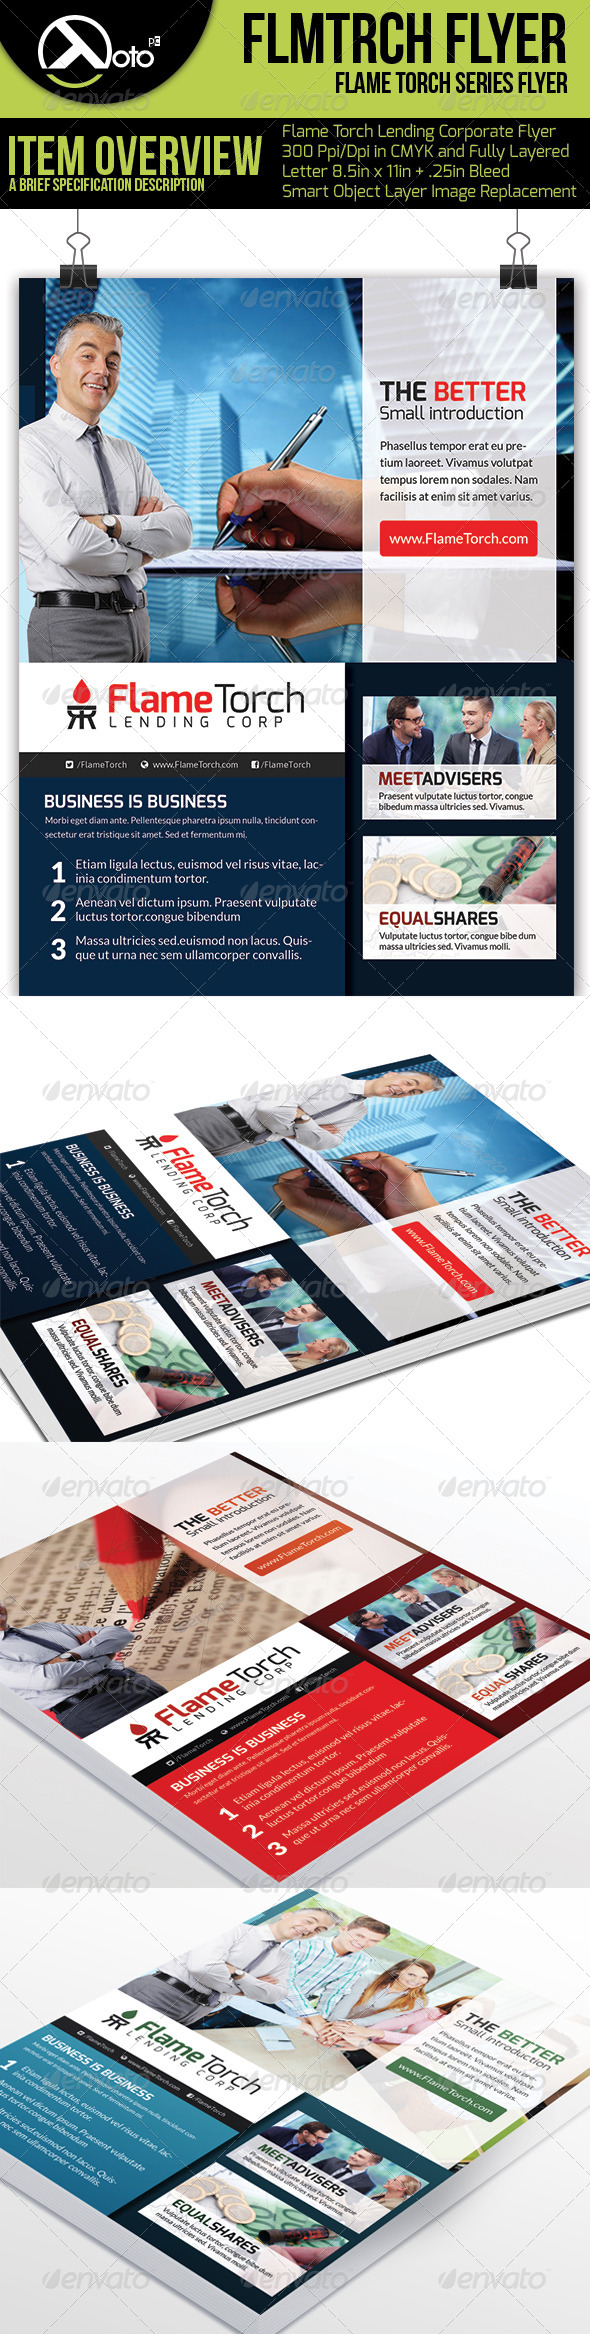 GraphicRiver Flame Torch Corporate Lending Flyers 6250768